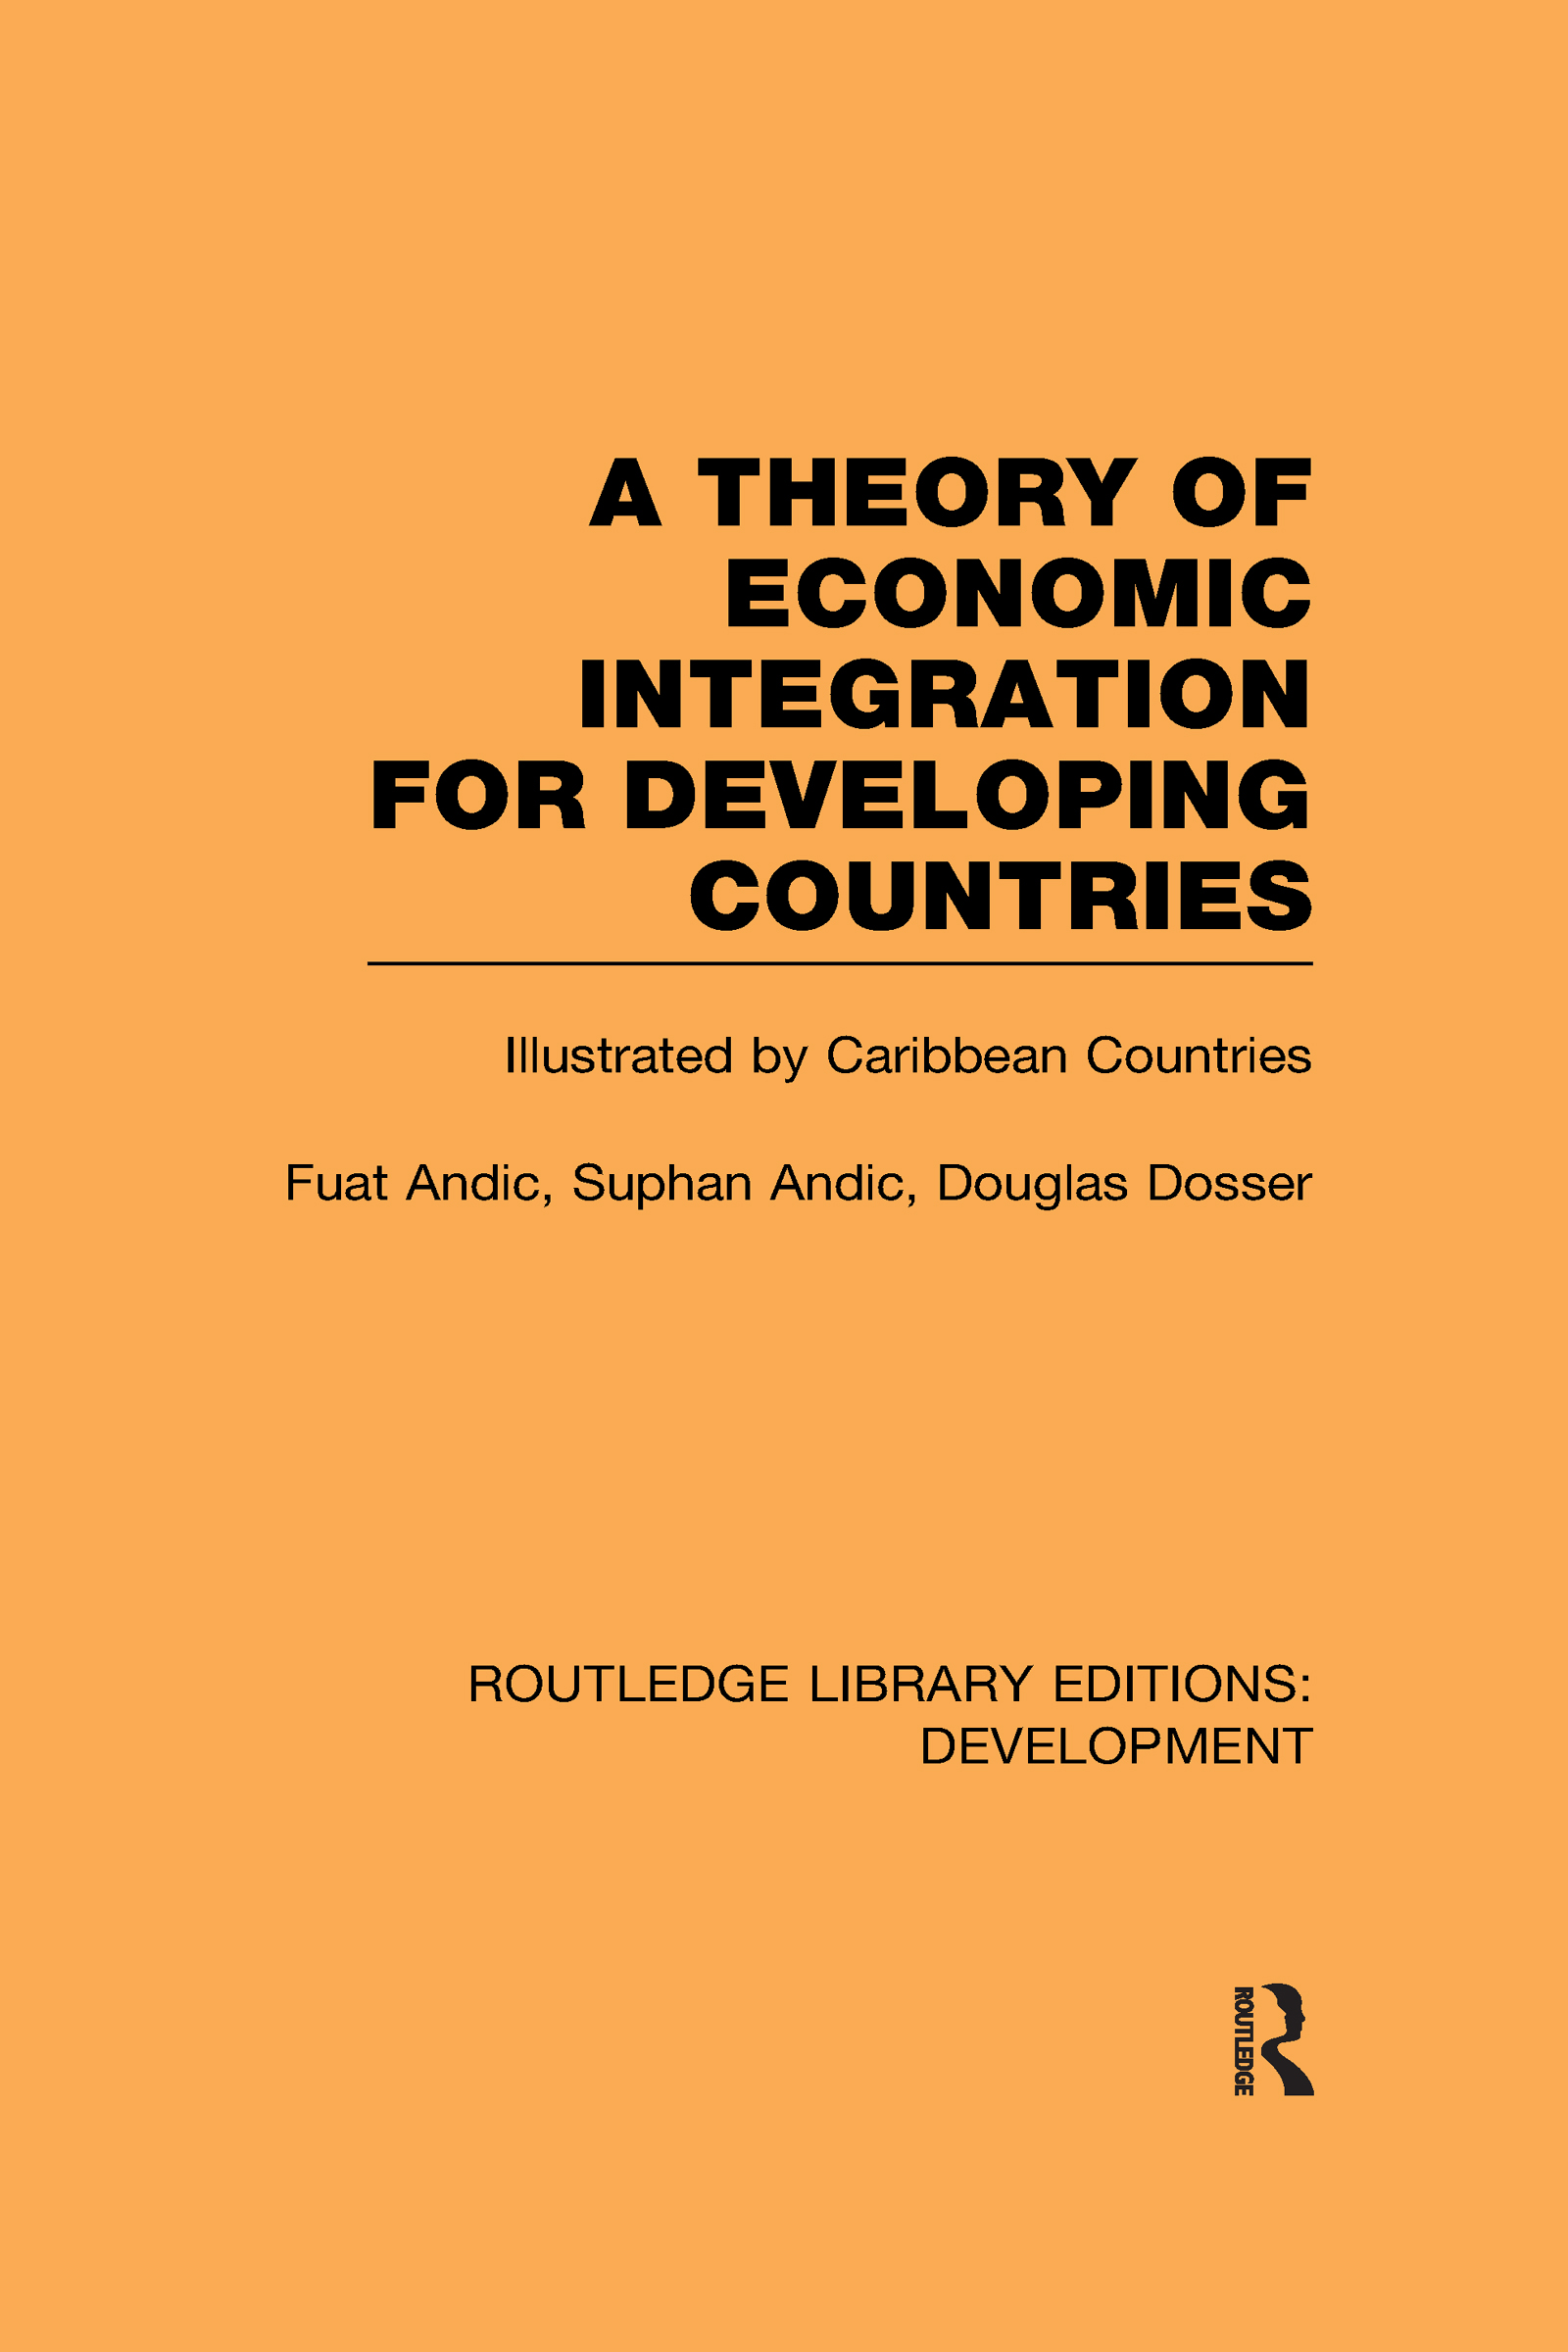 A Theory of Economic Integration for Developing Countries